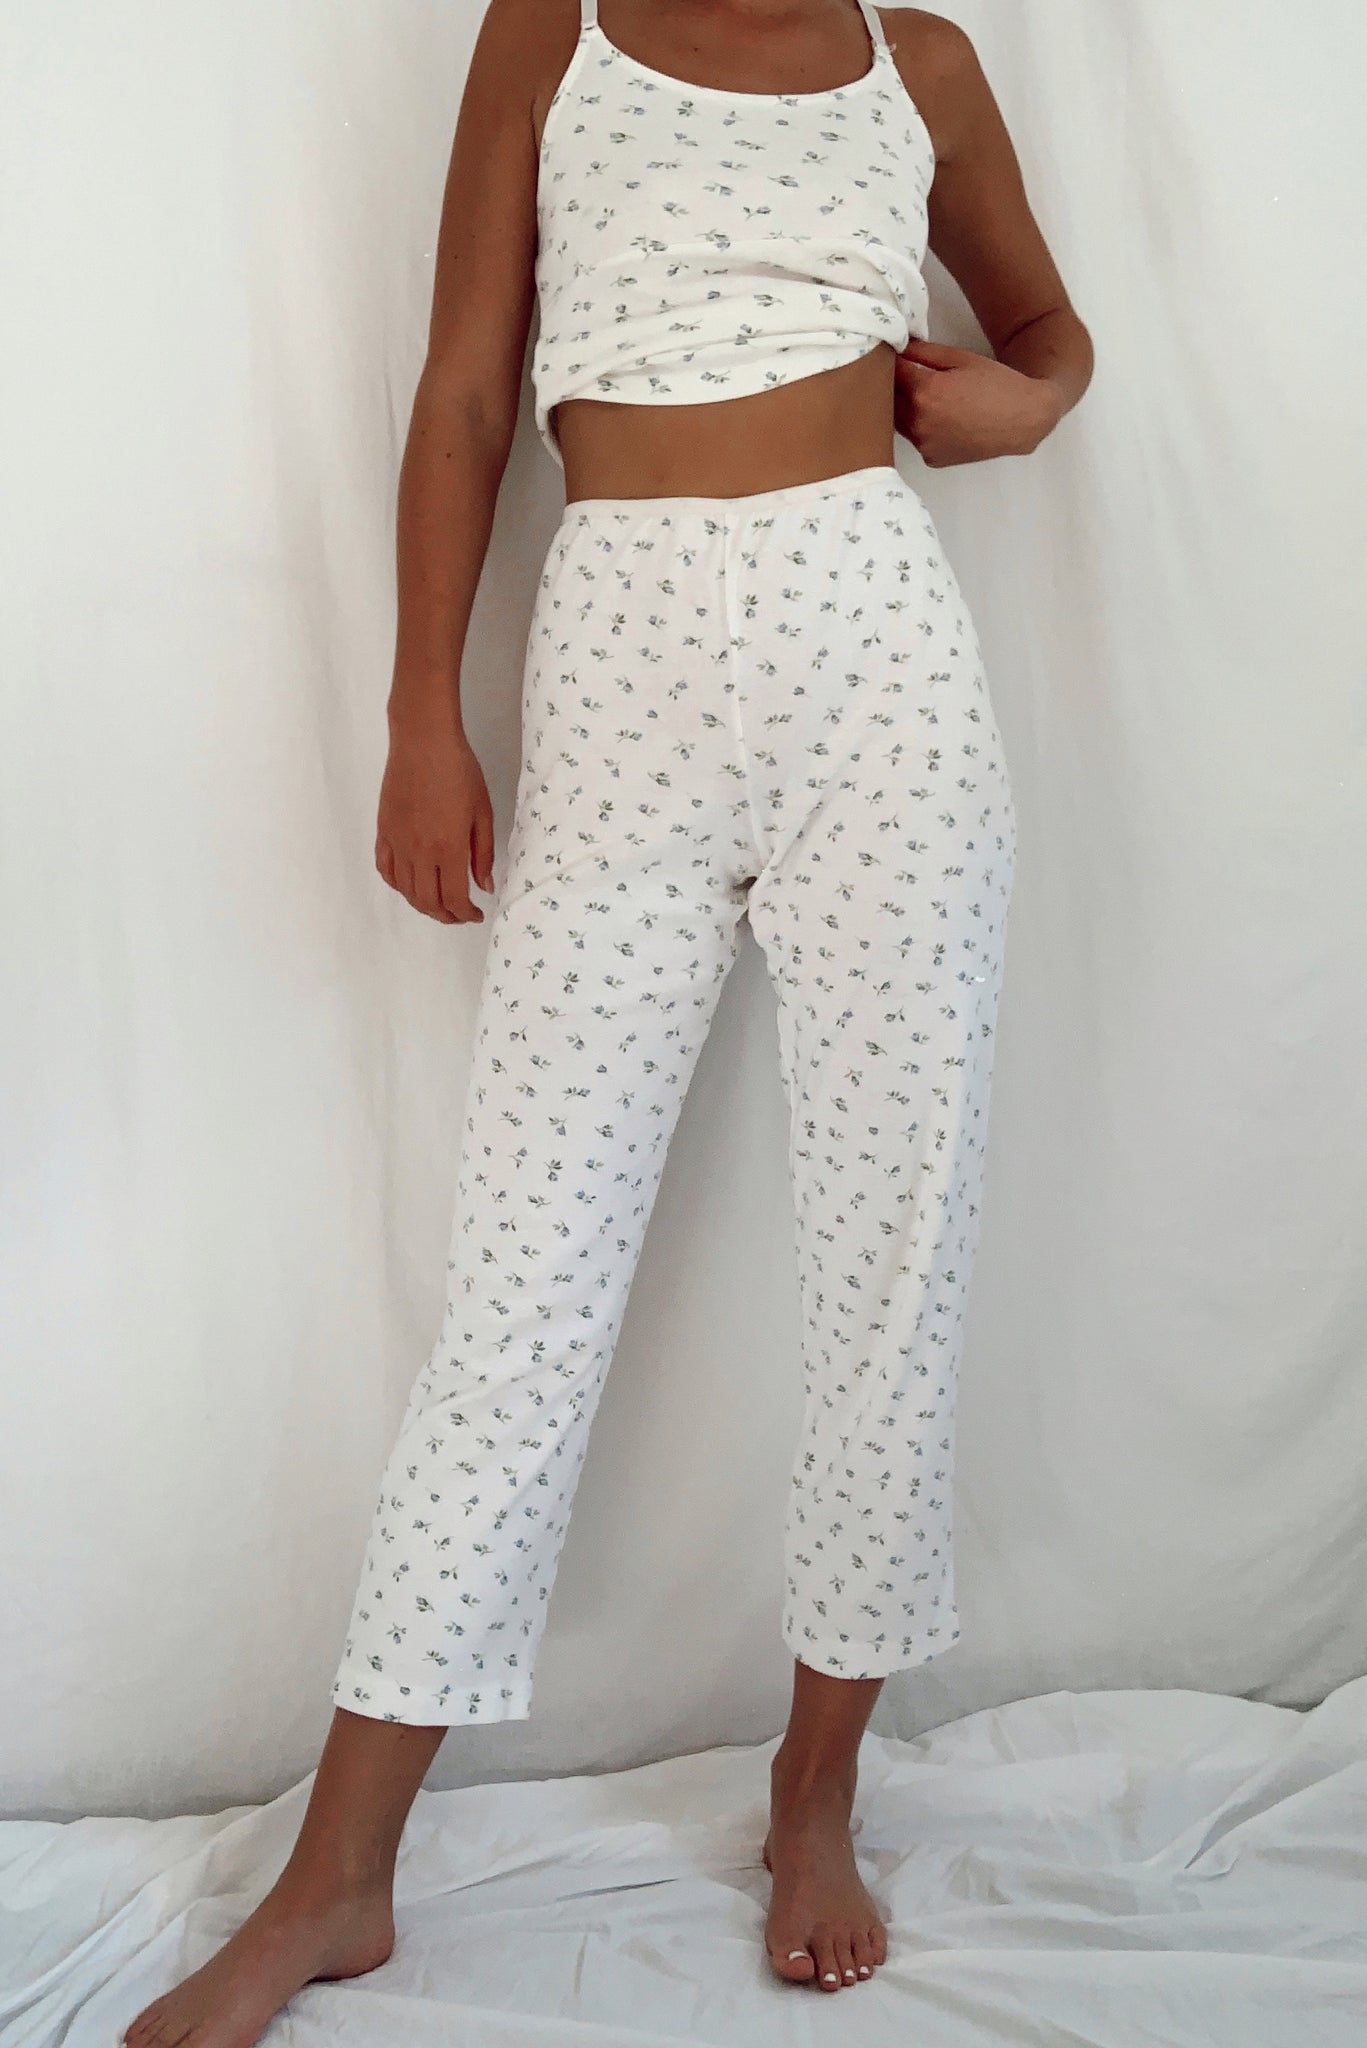 Vintage 3 Piece Cotton PJ Set (S-M)